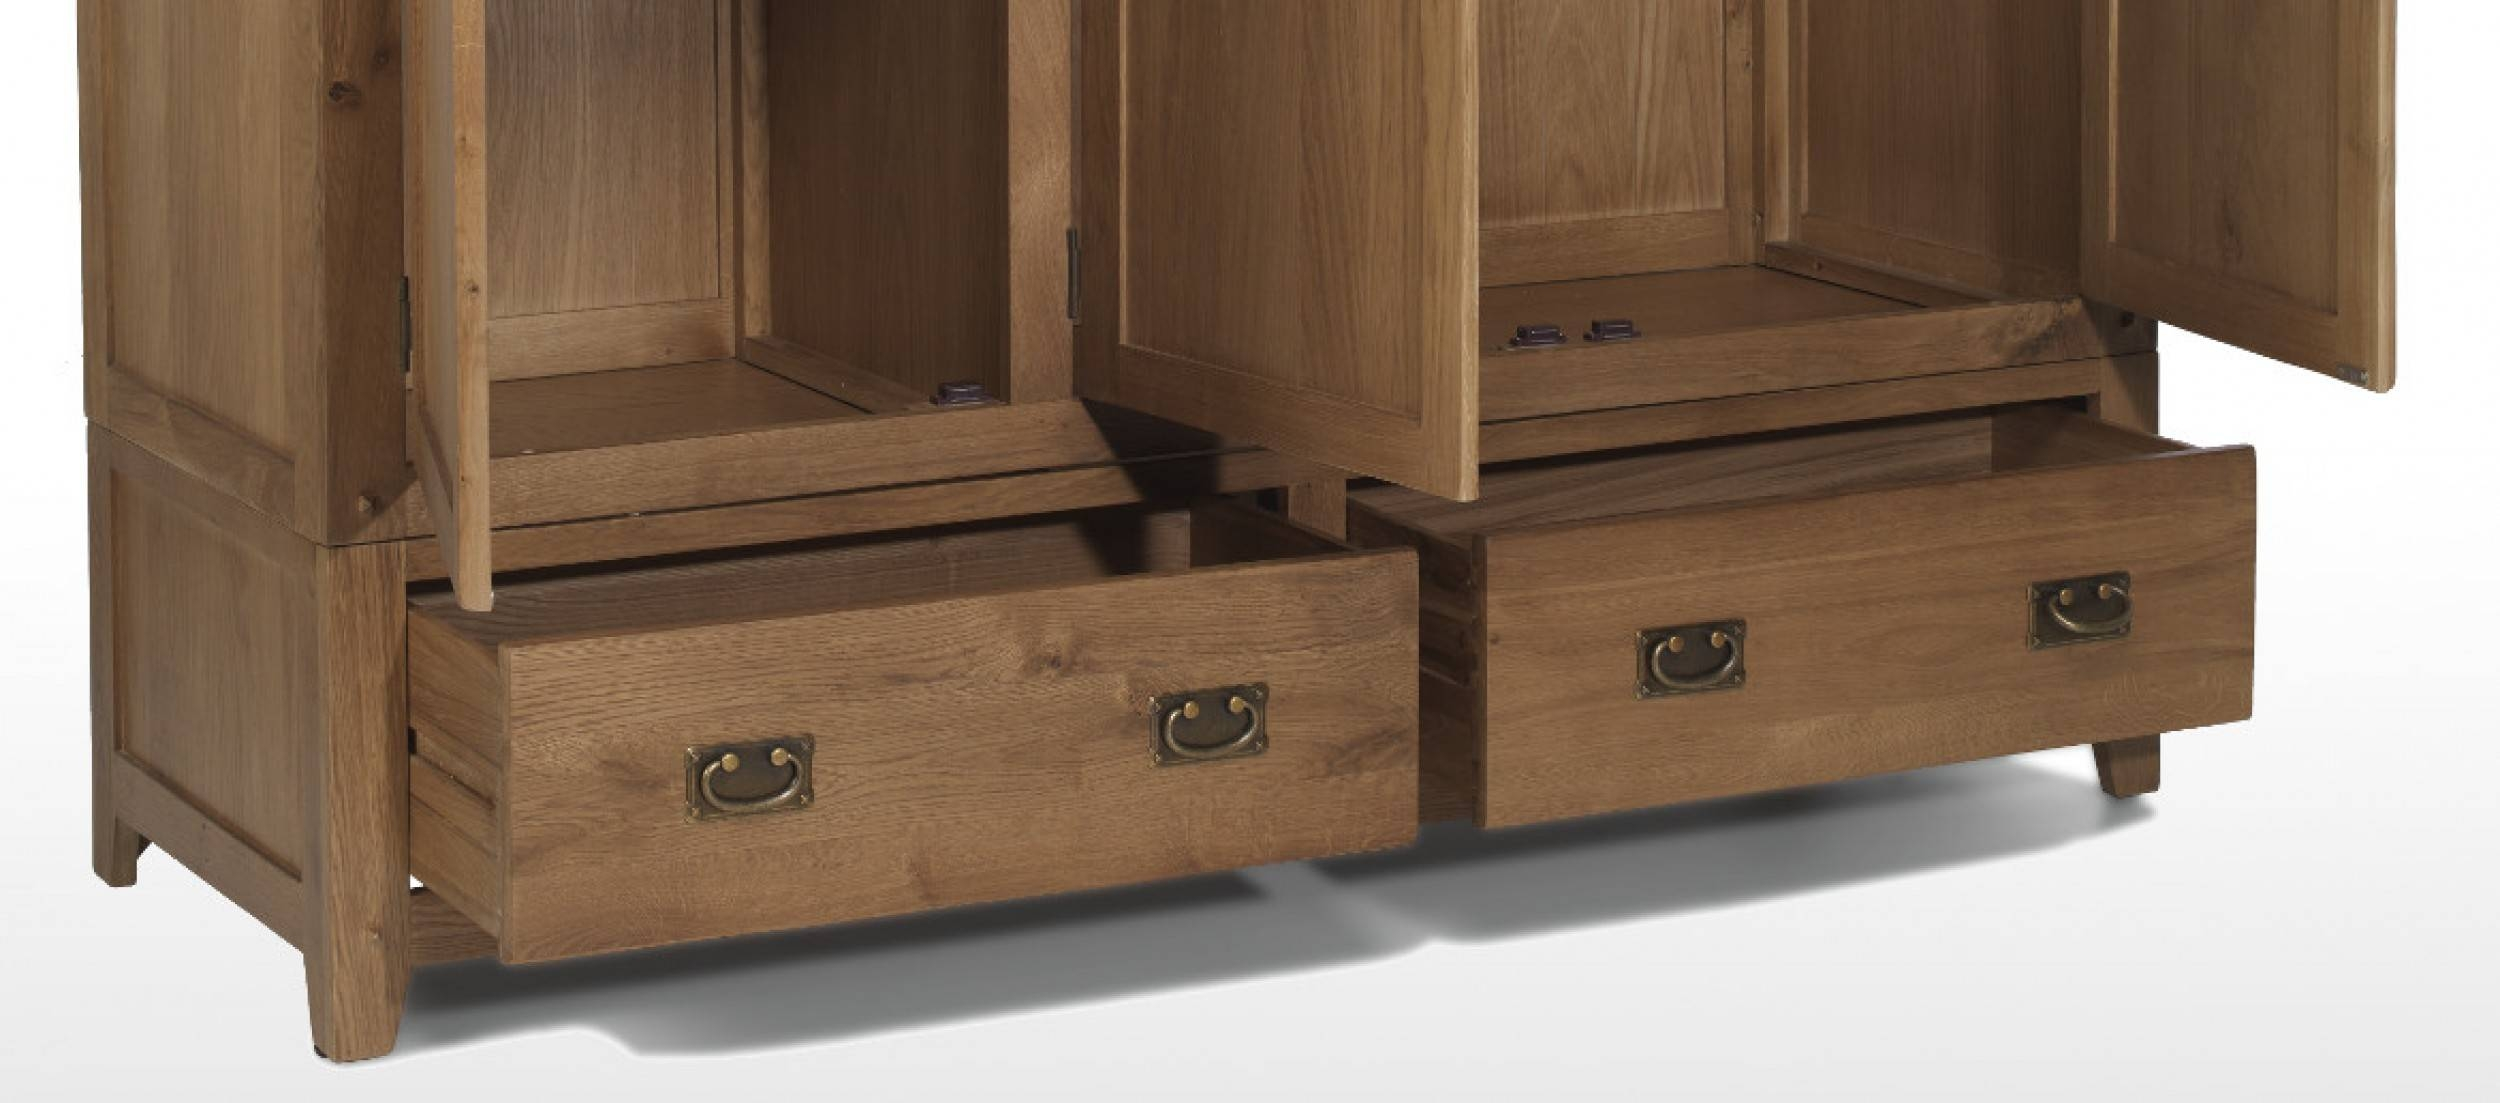 Rustic Oak Triple Wardrobe With Drawers | Quercus Living for Triple Oak Wardrobes (Image 12 of 15)